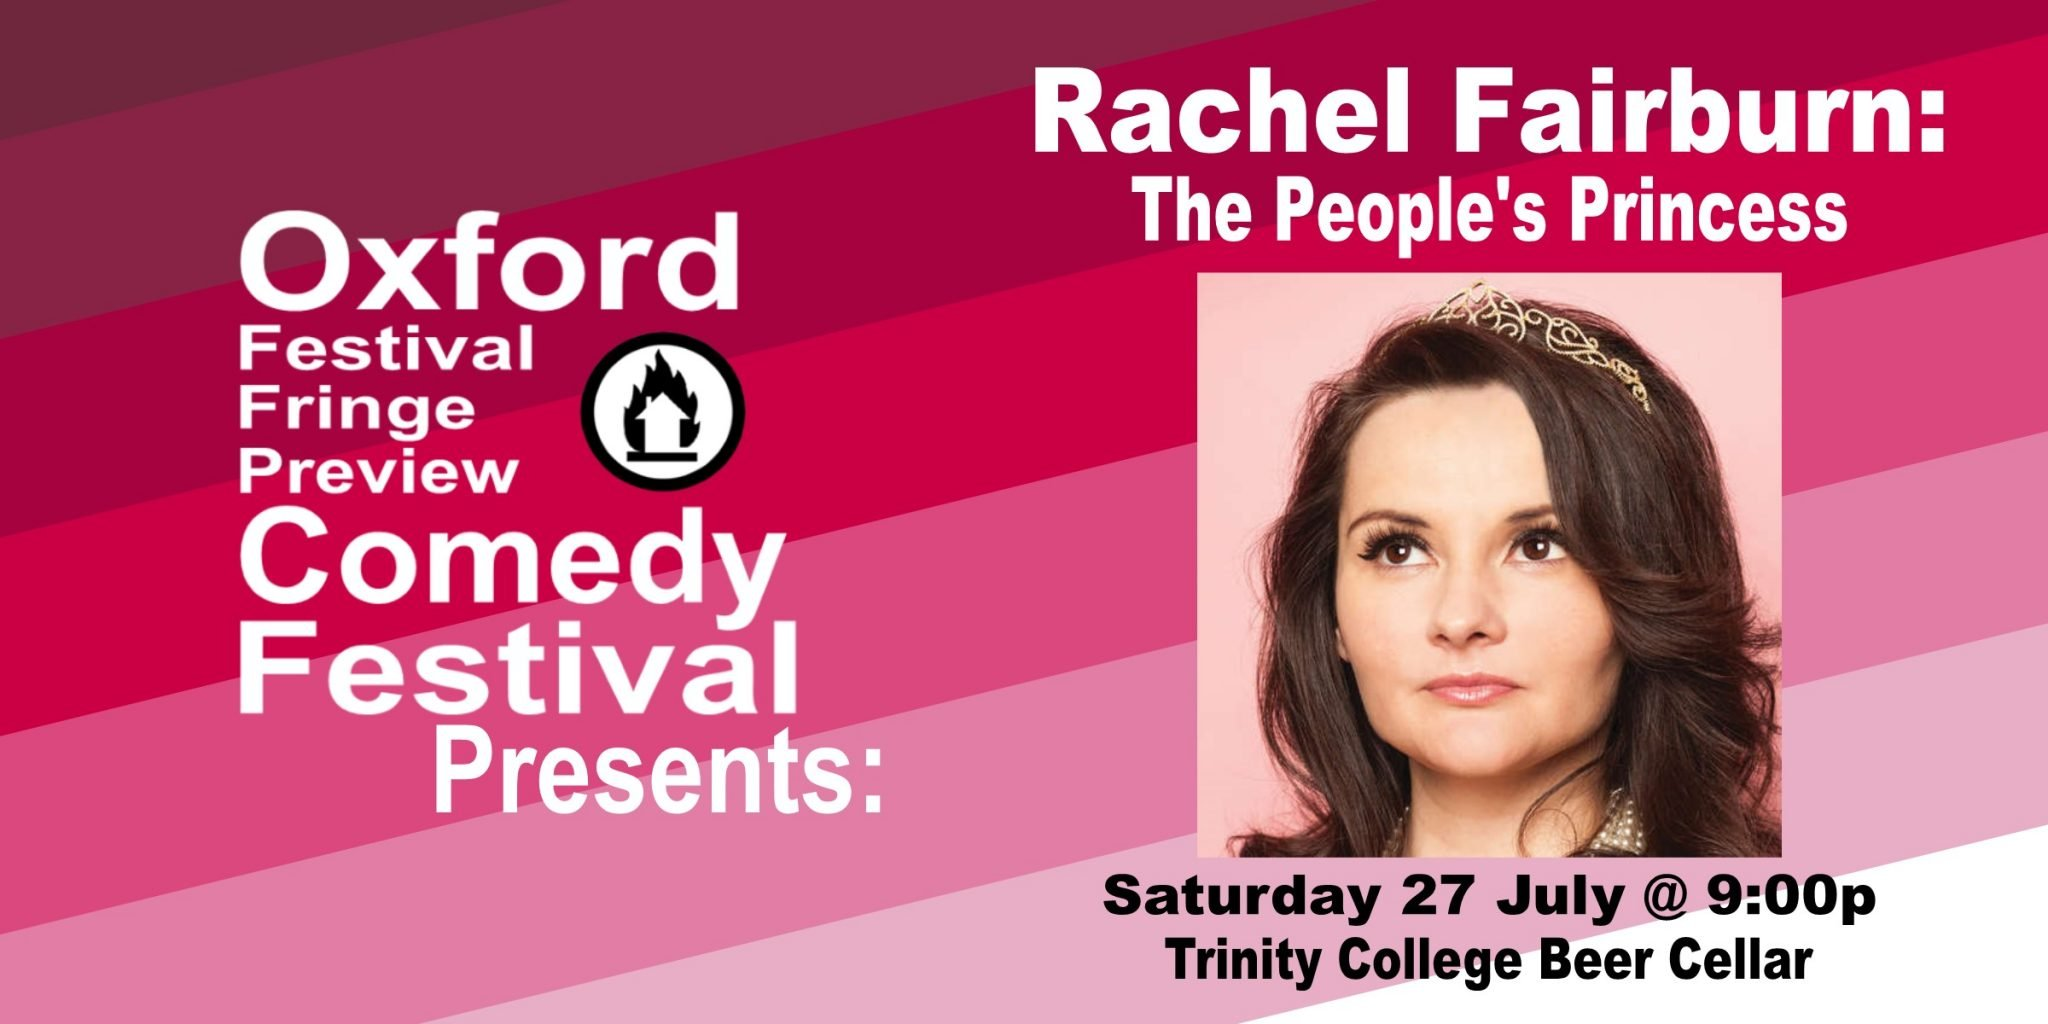 Oxford Comedy Festival 2019 presents Rachel Fairburn: The People's Princess